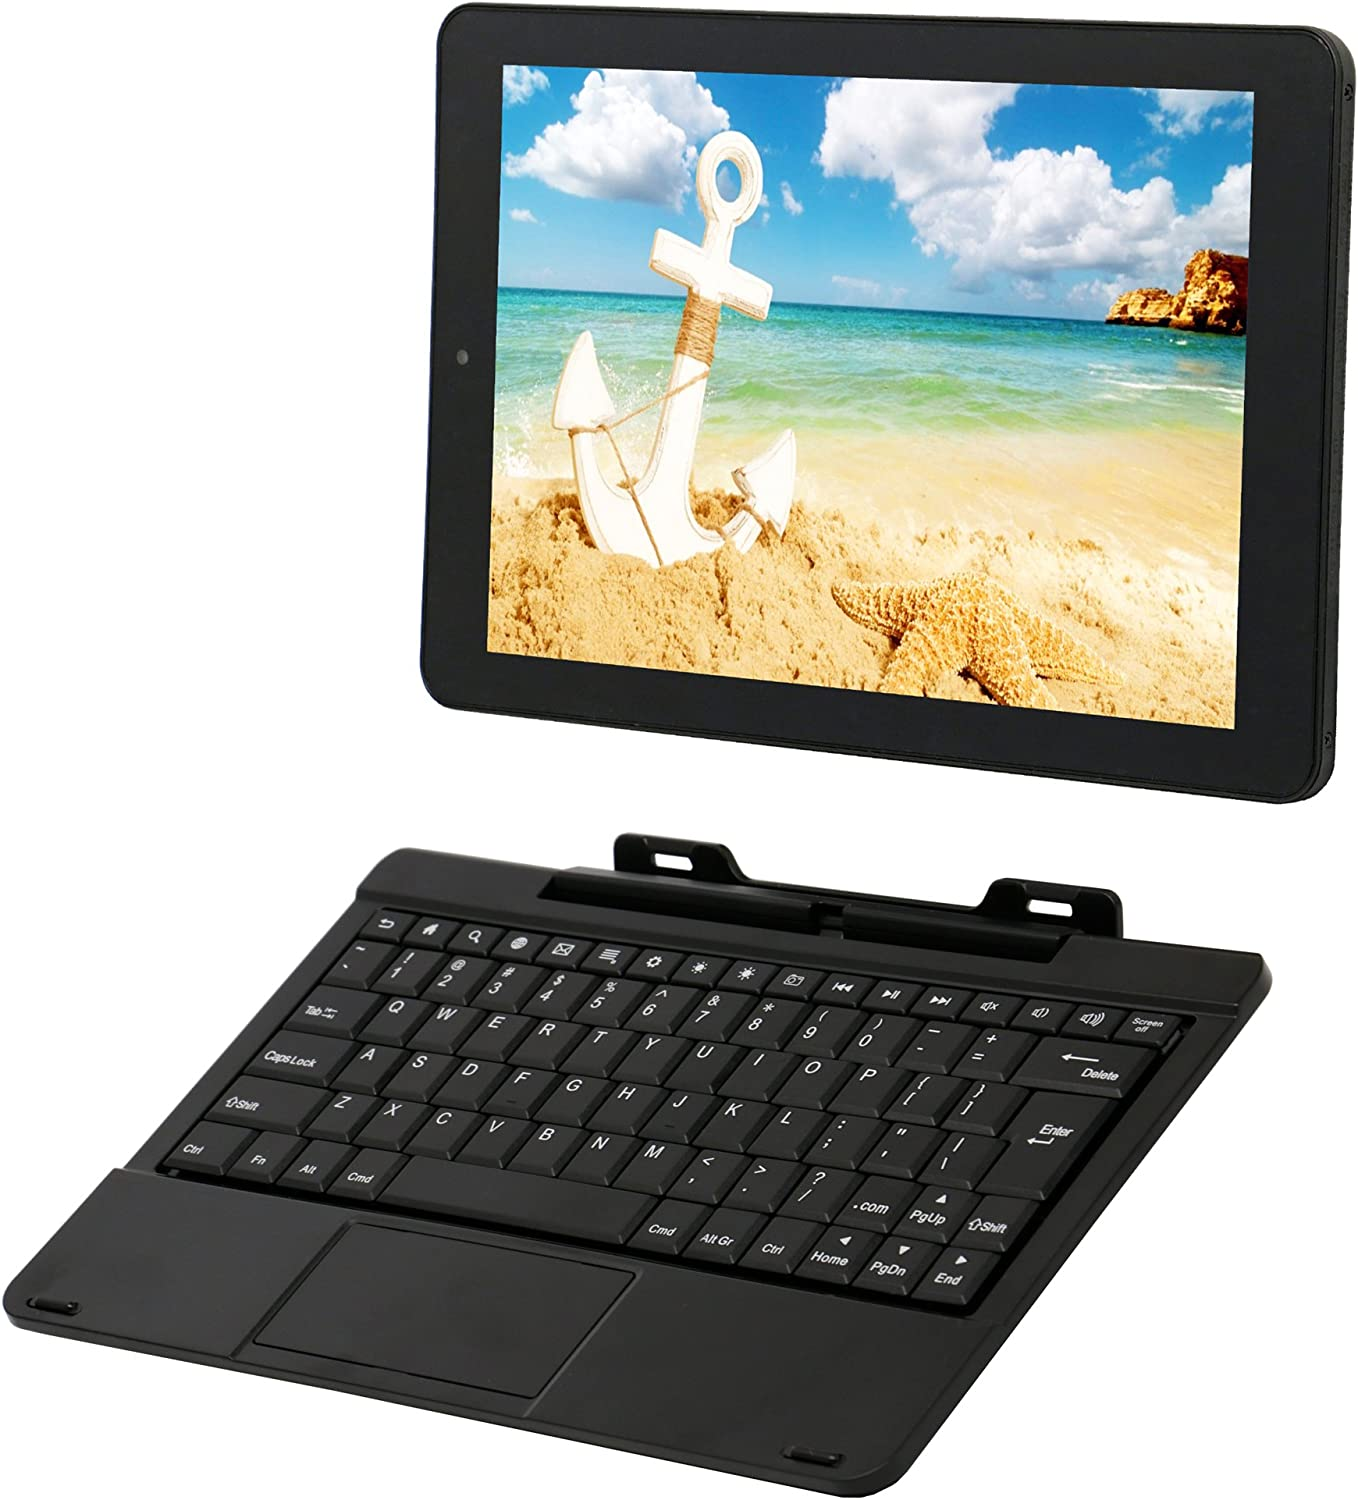 Amazon.com: RCA Viking Pro - Tablet 2 en 1 de 10 pulgadas ...